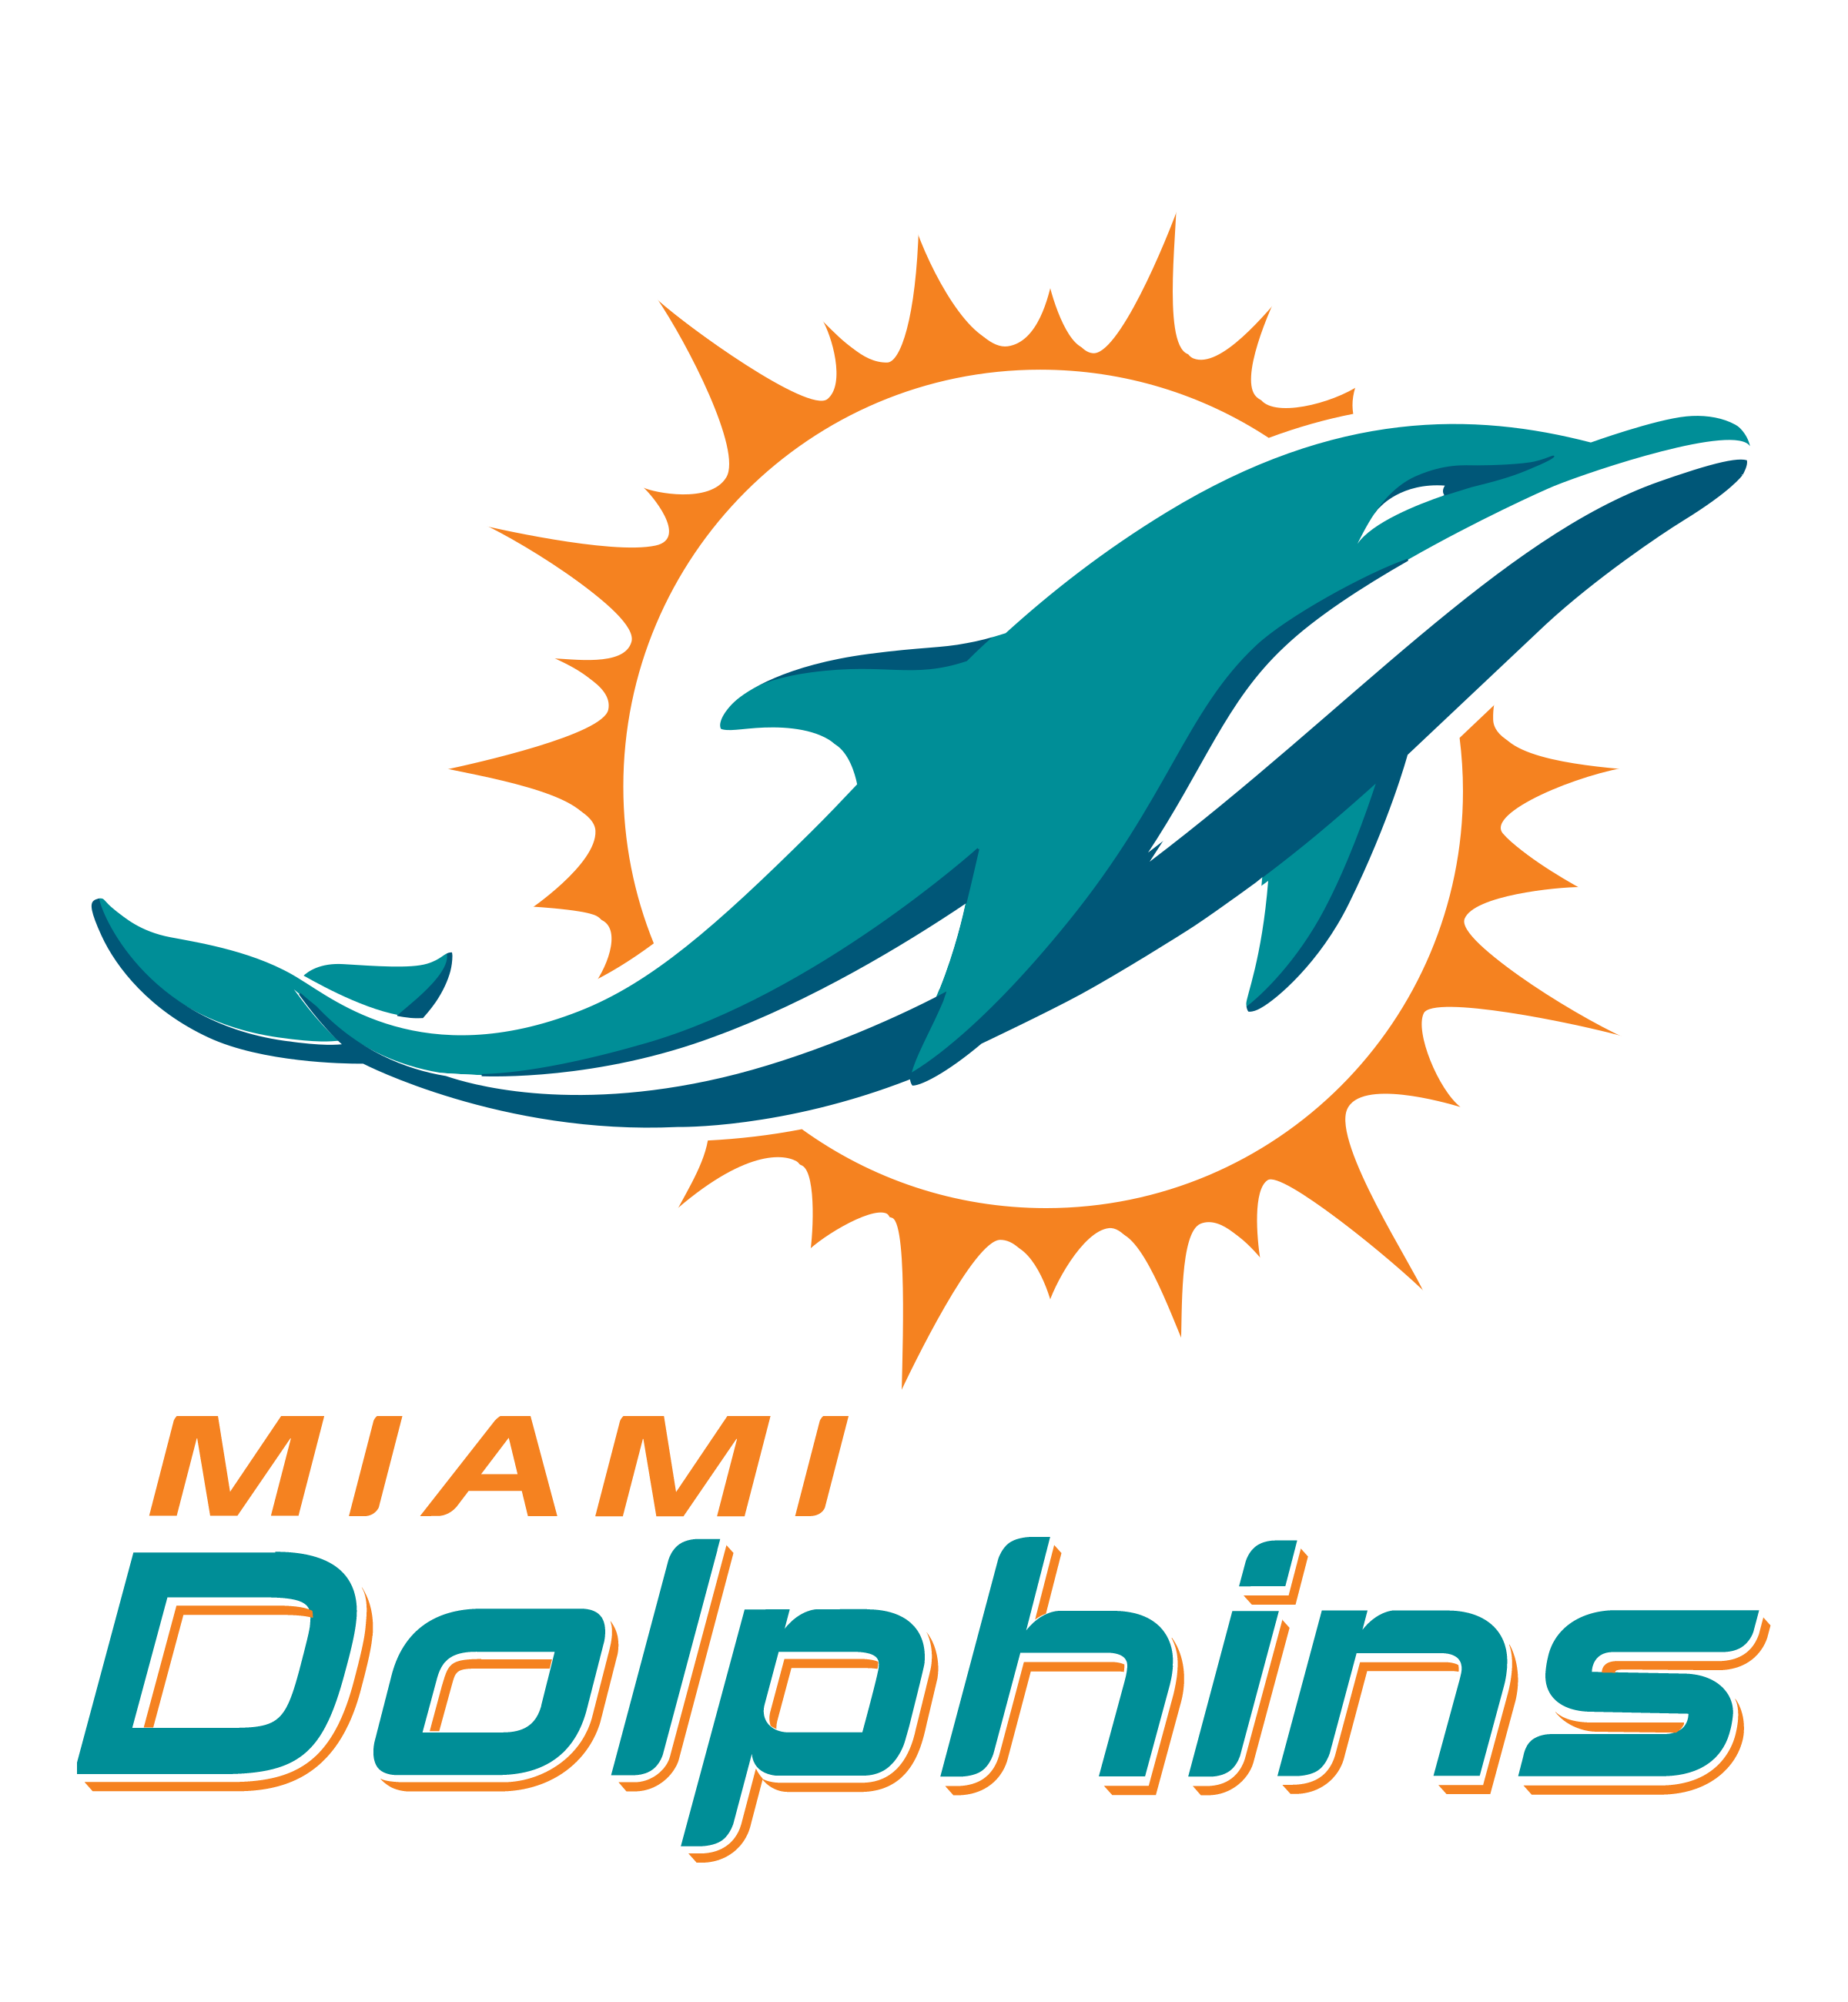 Miami dolphins at getdrawings. Dolphin clipart sad